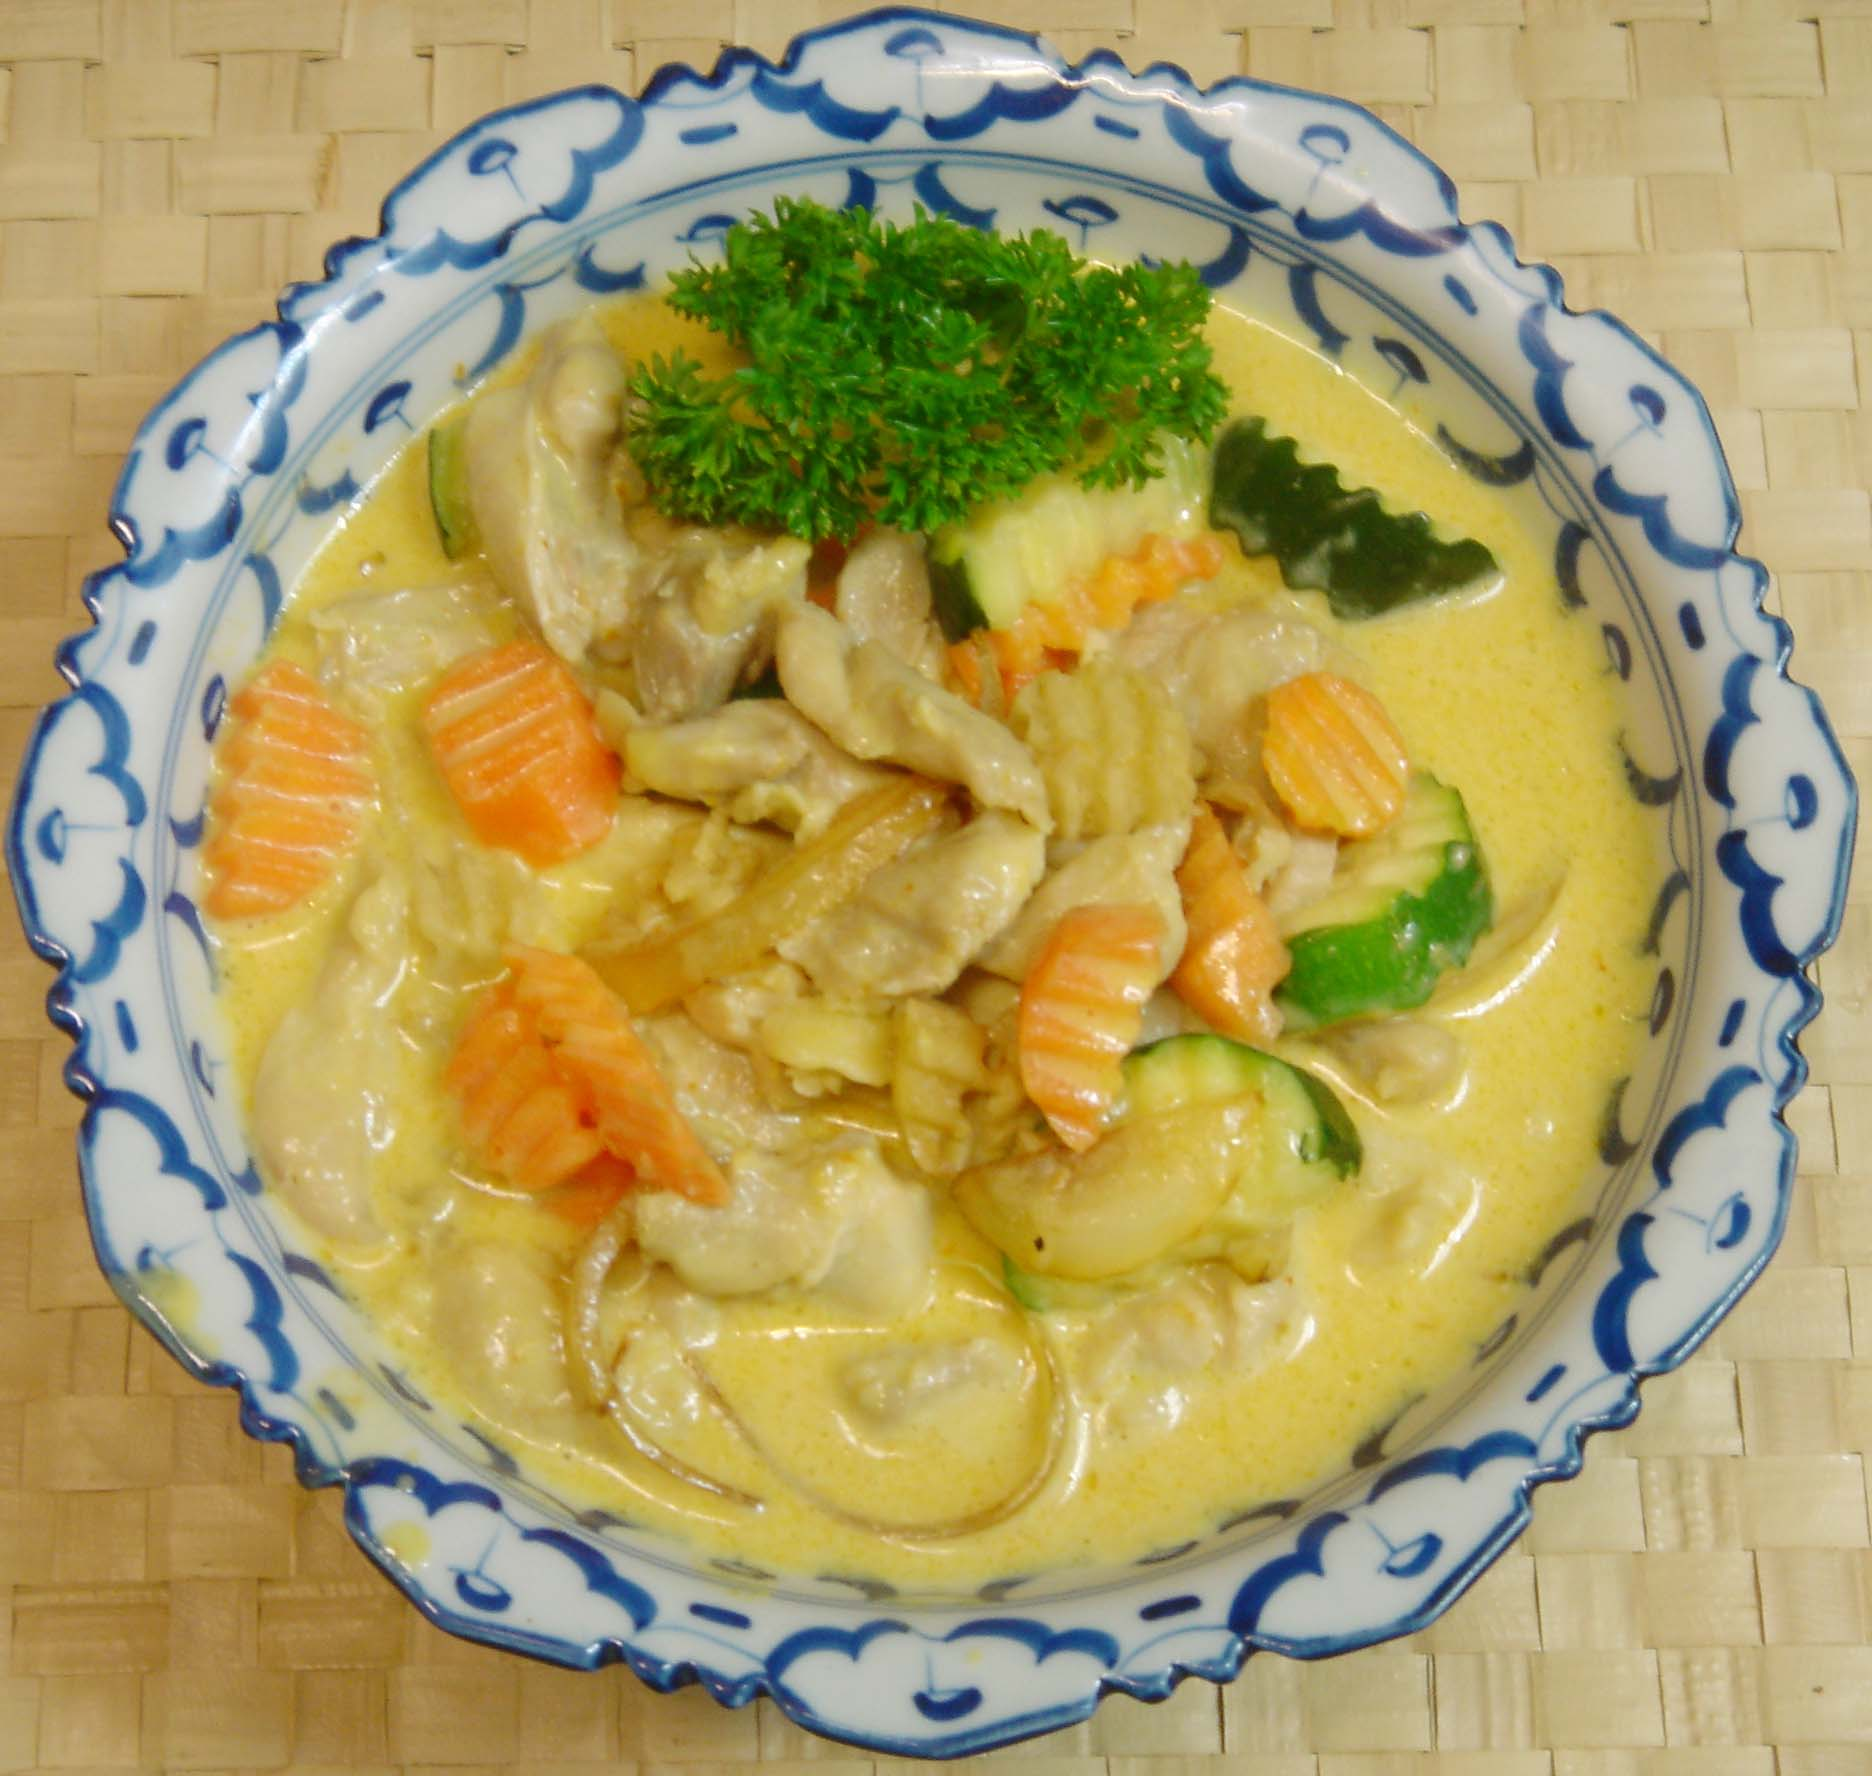 Narin authentic thai cuisine kang karie yellow curry view the dish forumfinder Image collections